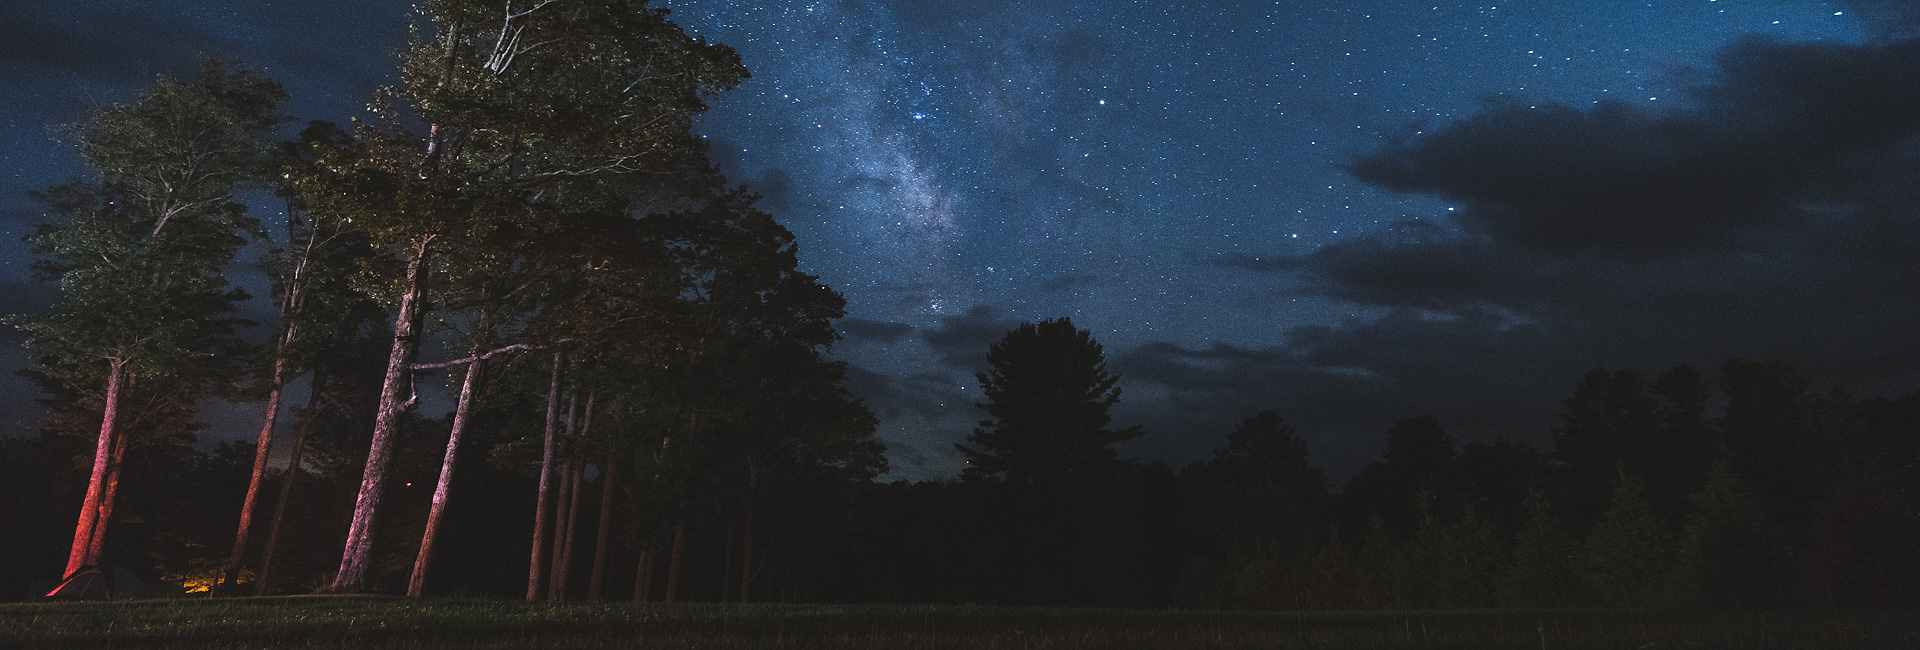 International Dark Sky Park: Camping at Cherry Springs State